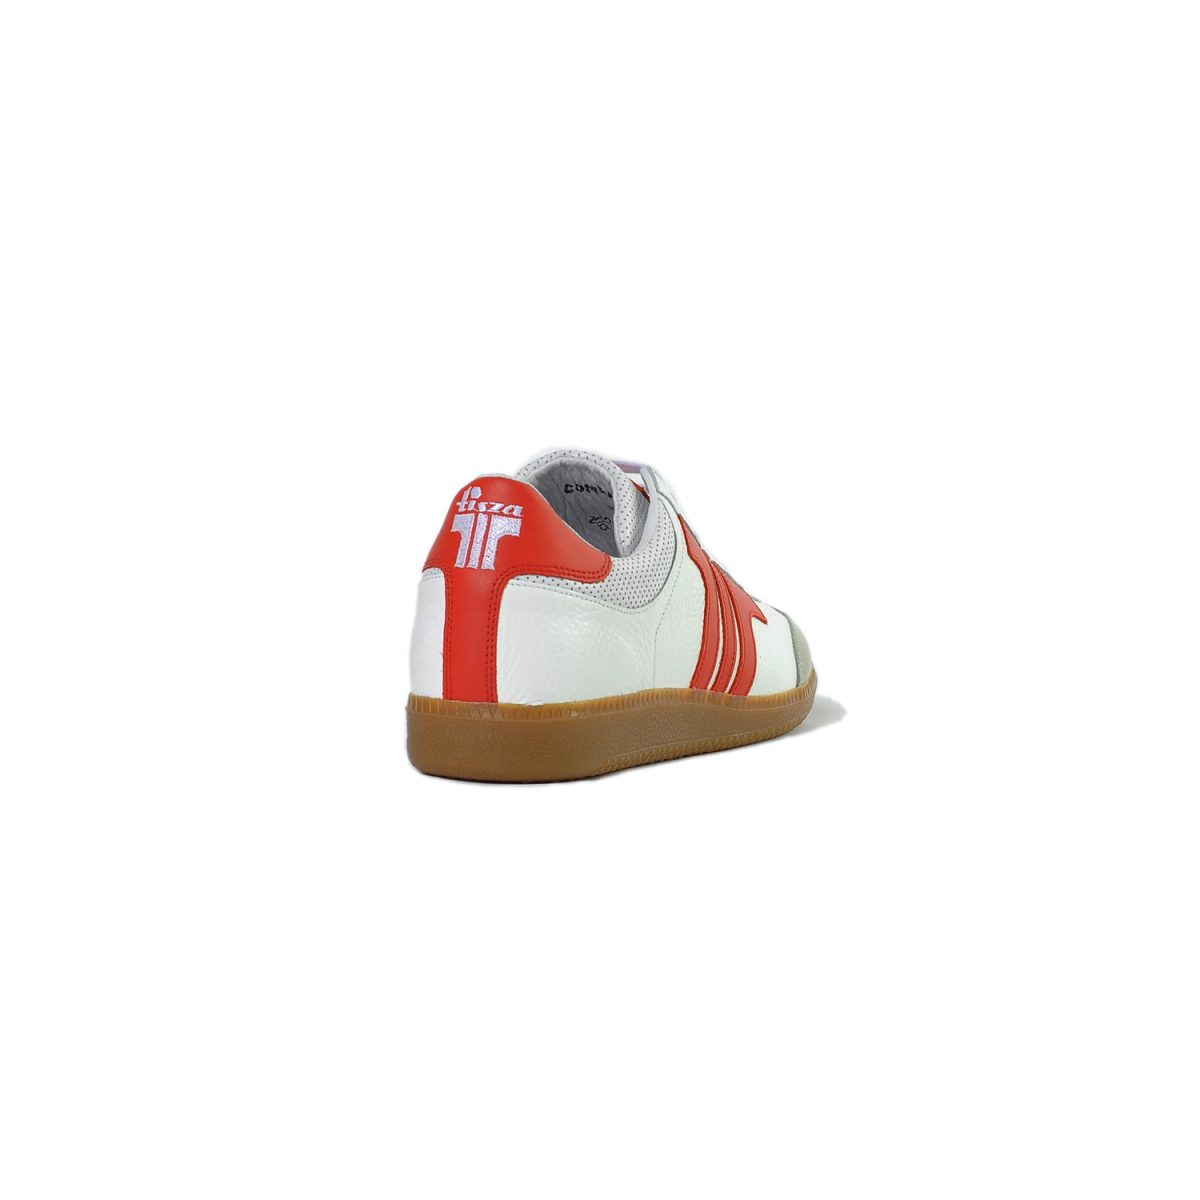 Tisza shoes - Compakt - White-red